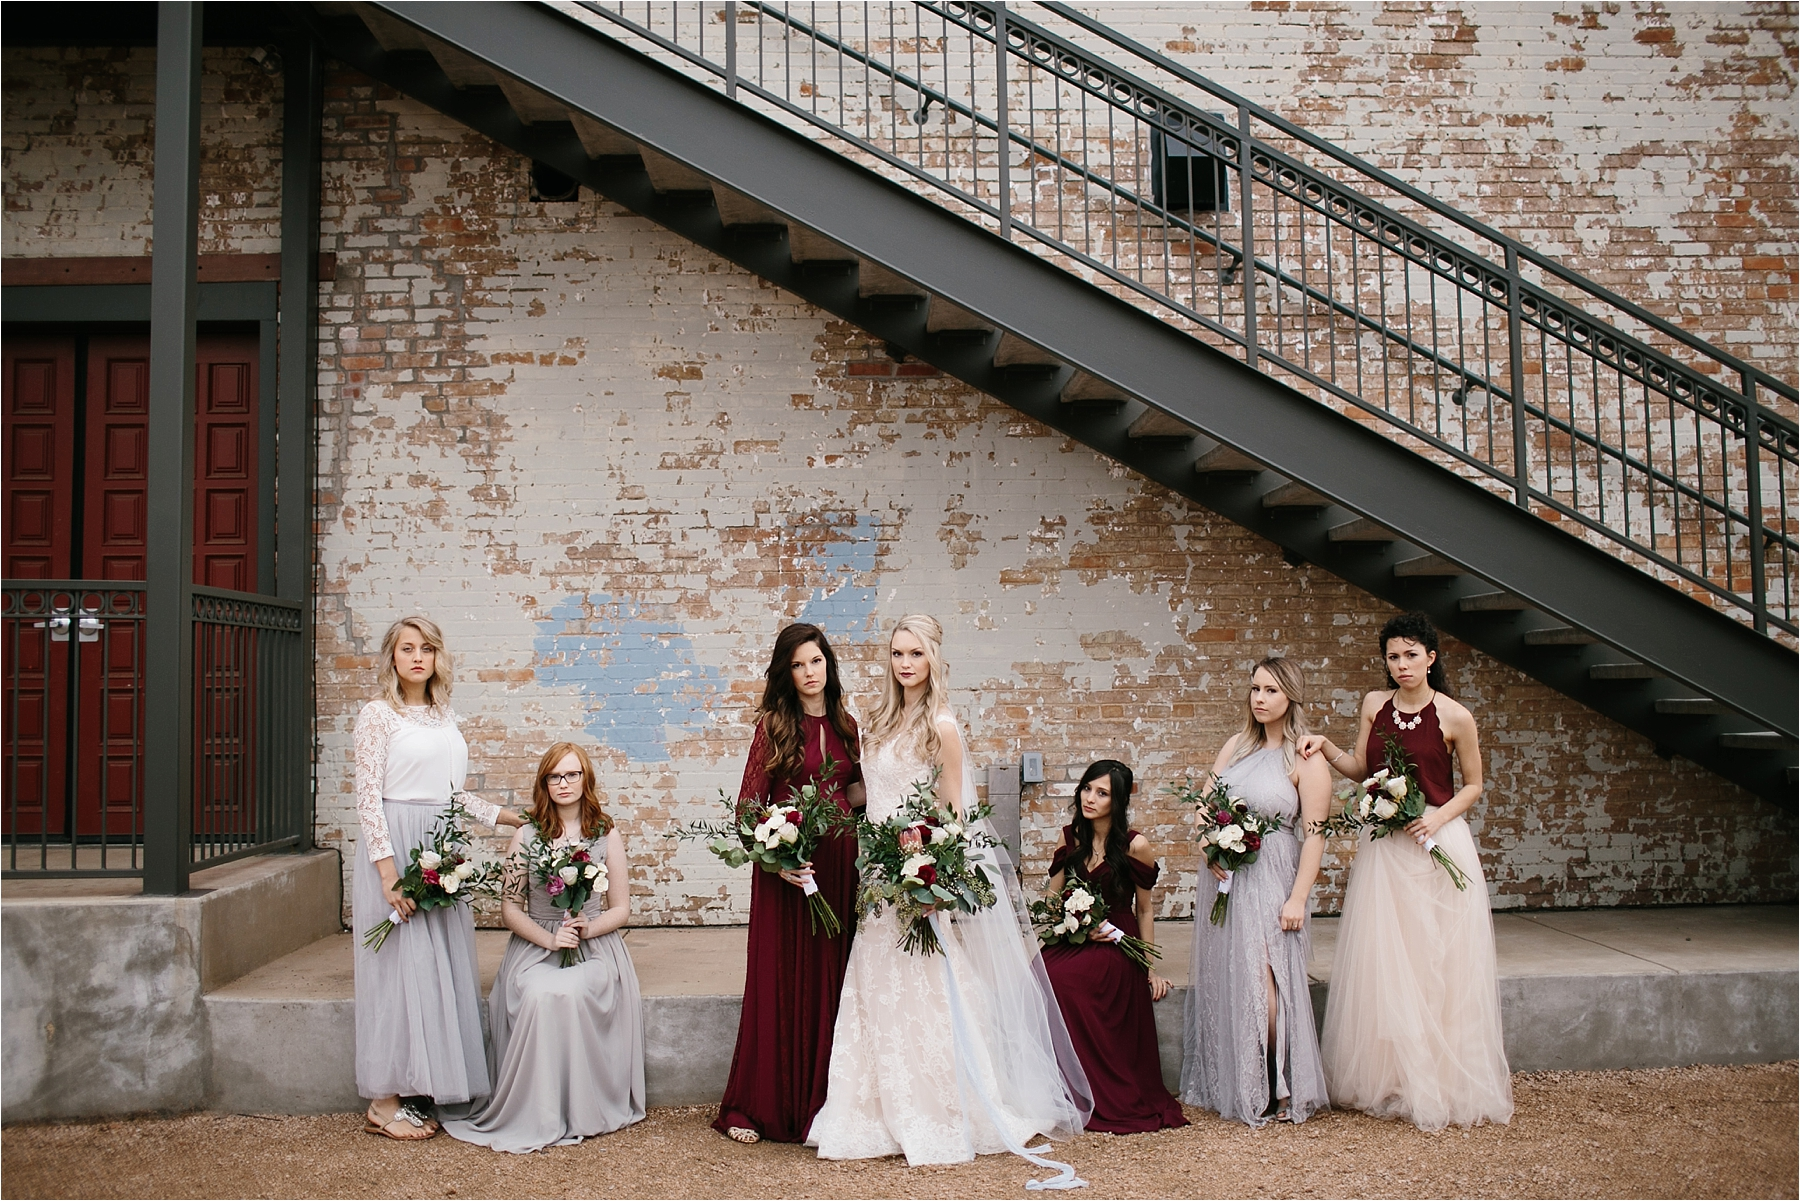 an organic, romantic, whimsical wedding at Brik Venue with Blue Grey, Burgandy, and pops of navy gold + white accents by North Texas Wedding Photographer Rachel Meagan Photography __ 242